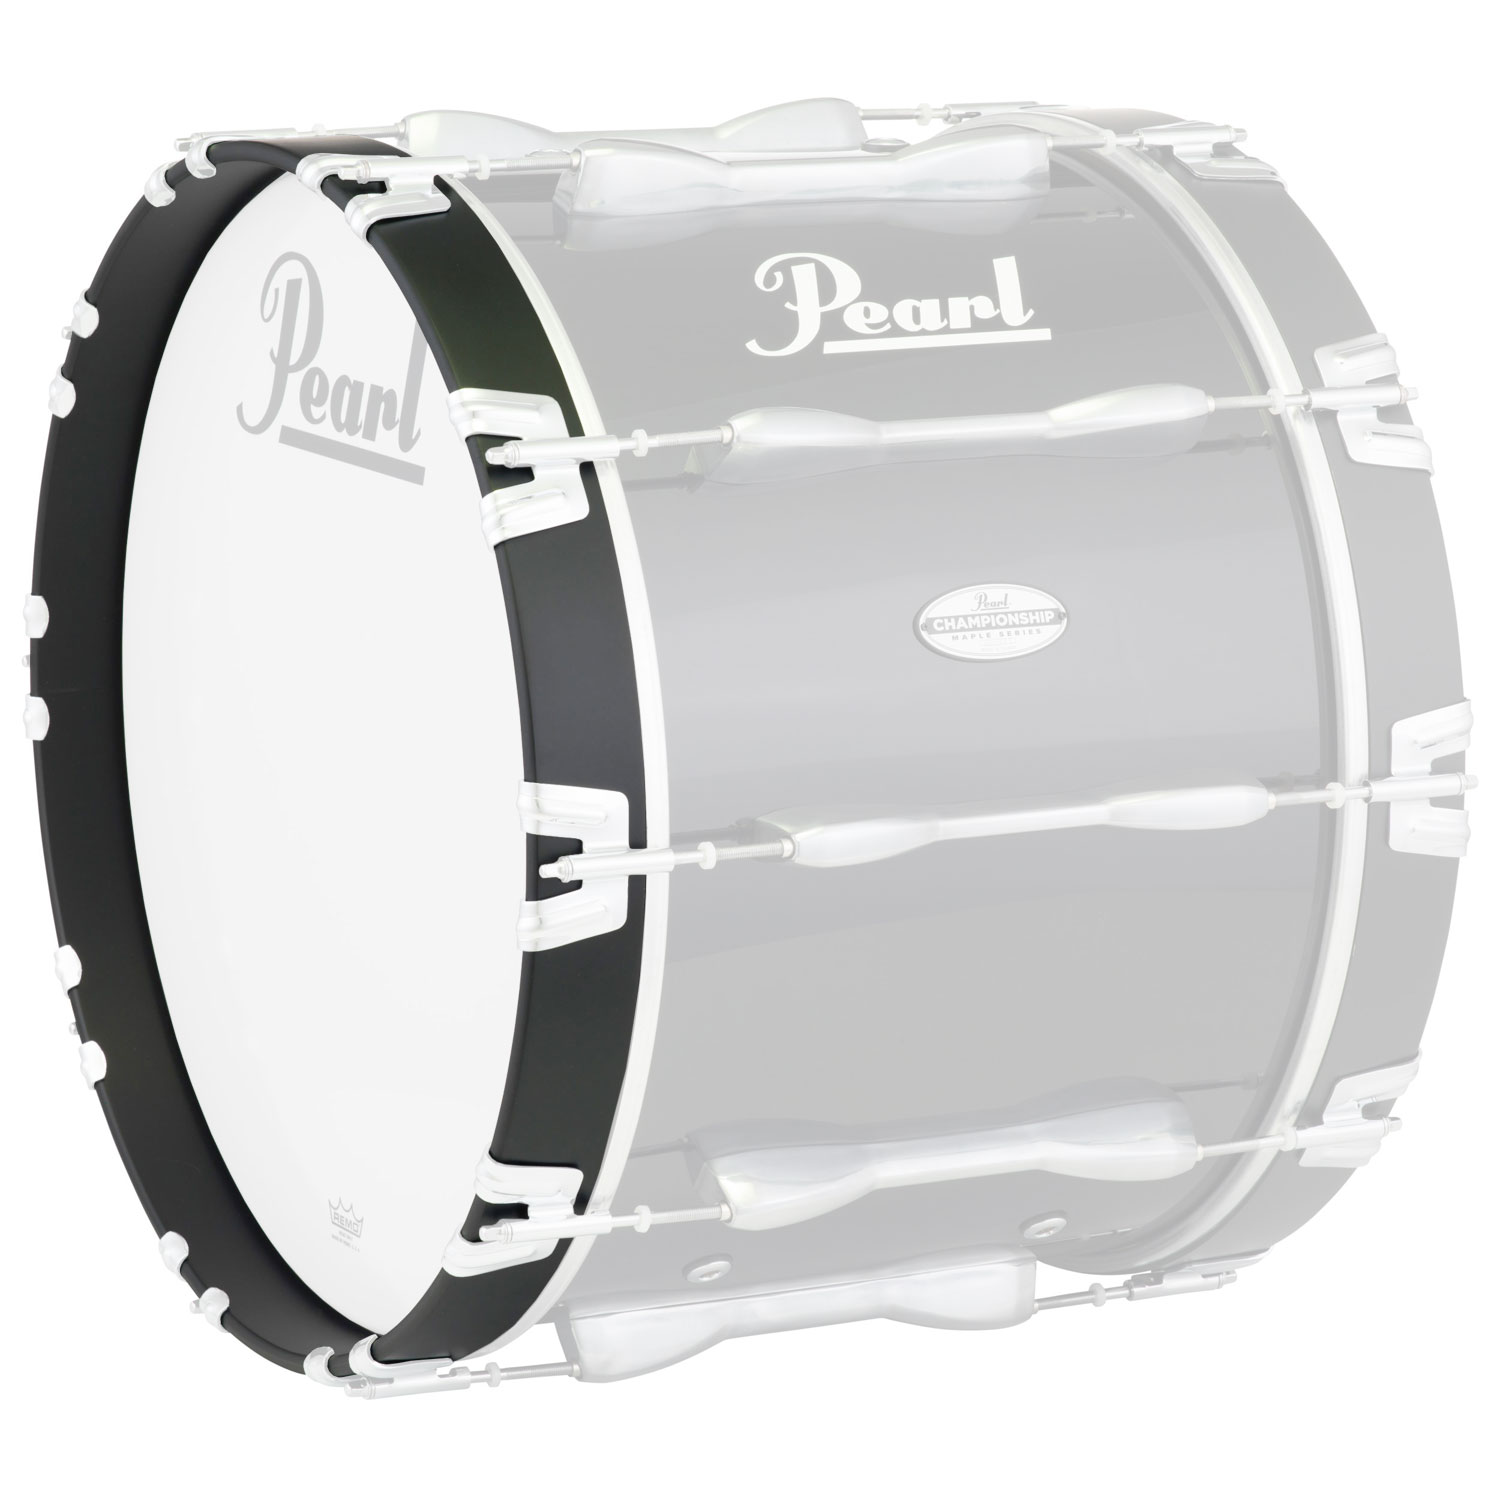 "Pearl 14"" Championship Bass Hoop, Gloss Black, 2"" Wide"